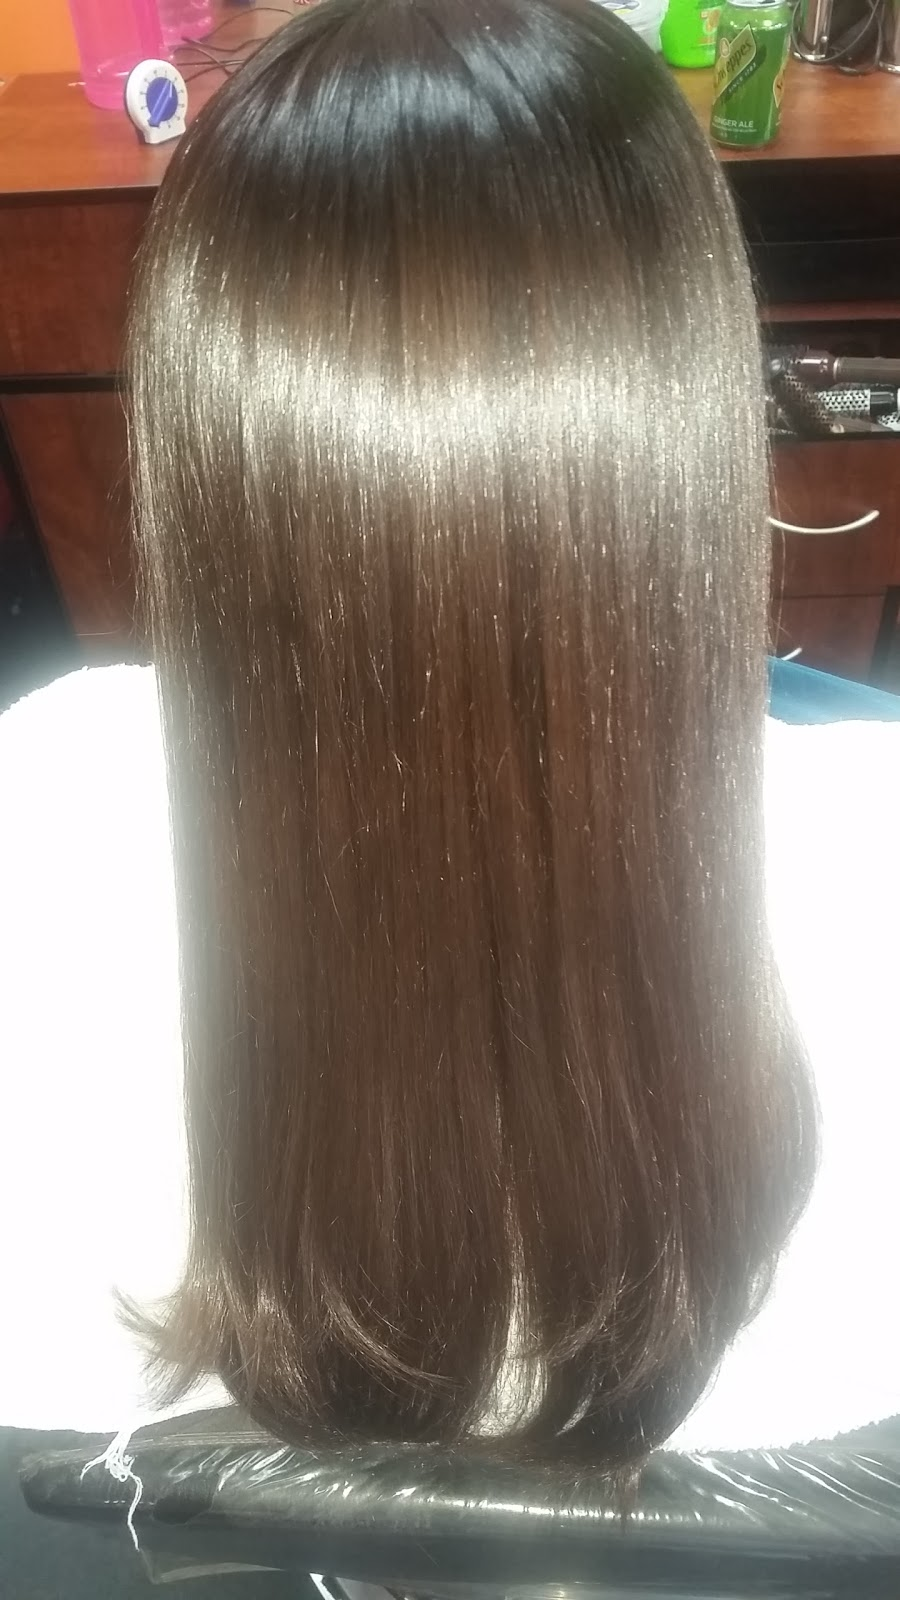 Guilles Dominican Hair Salon - hair care  | Photo 4 of 8 | Address: 2031 Forest Ave, Staten Island, NY 10303, USA | Phone: (718) 273-3434